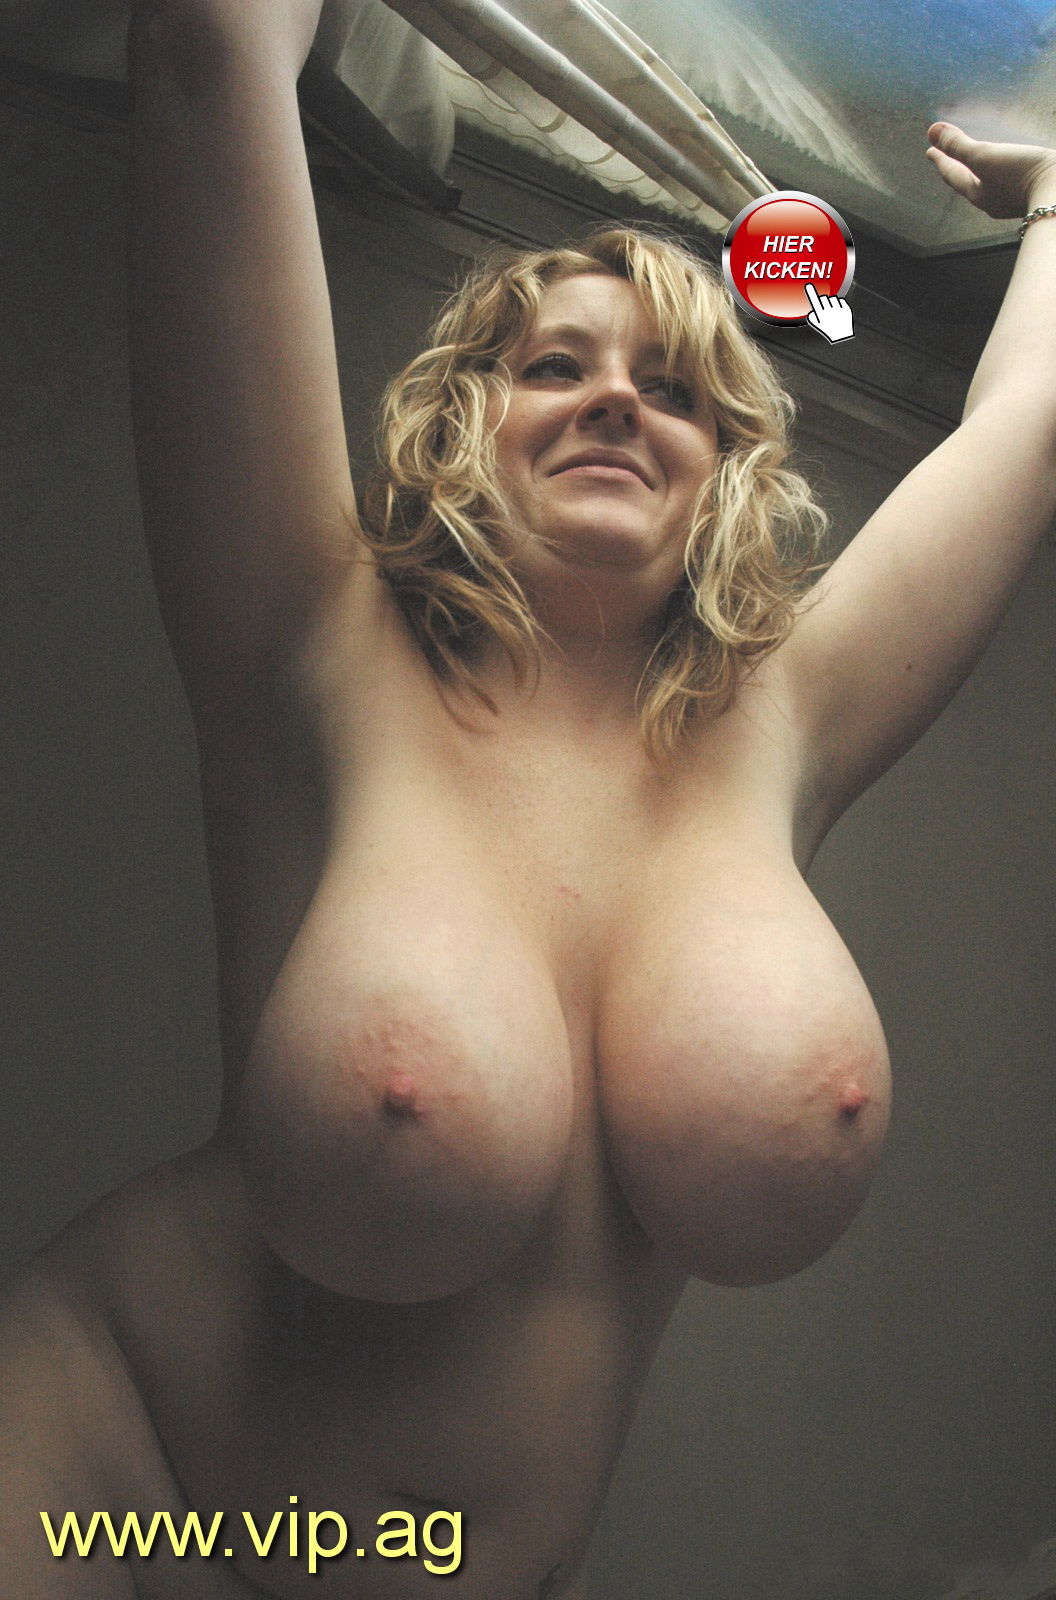 xxl Titten Monique